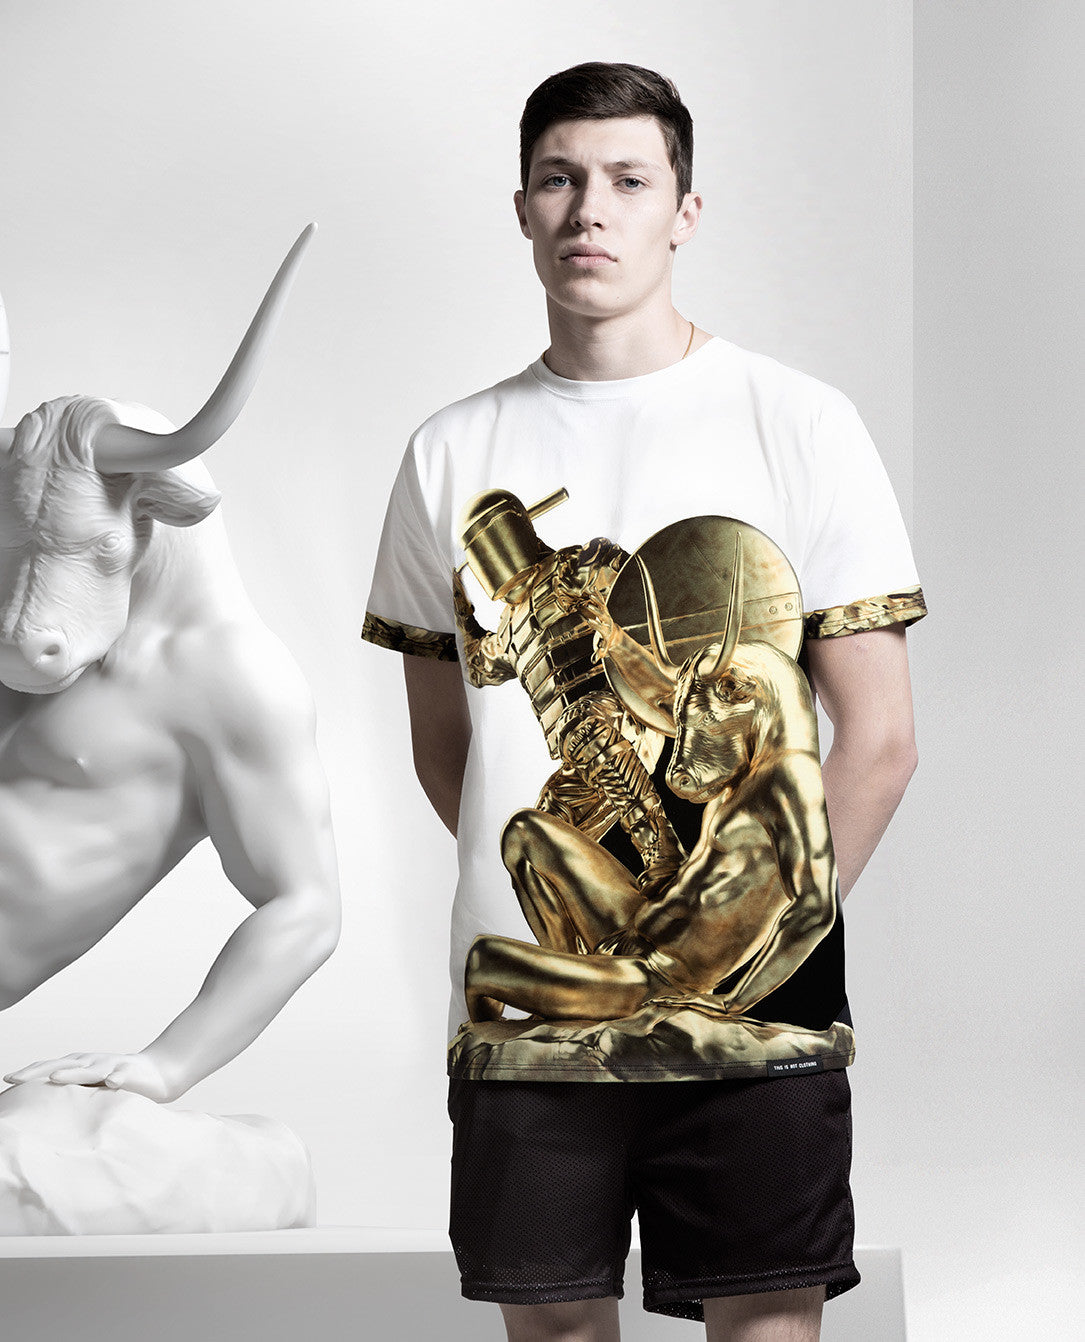 Theseus & The Minotaur Gold